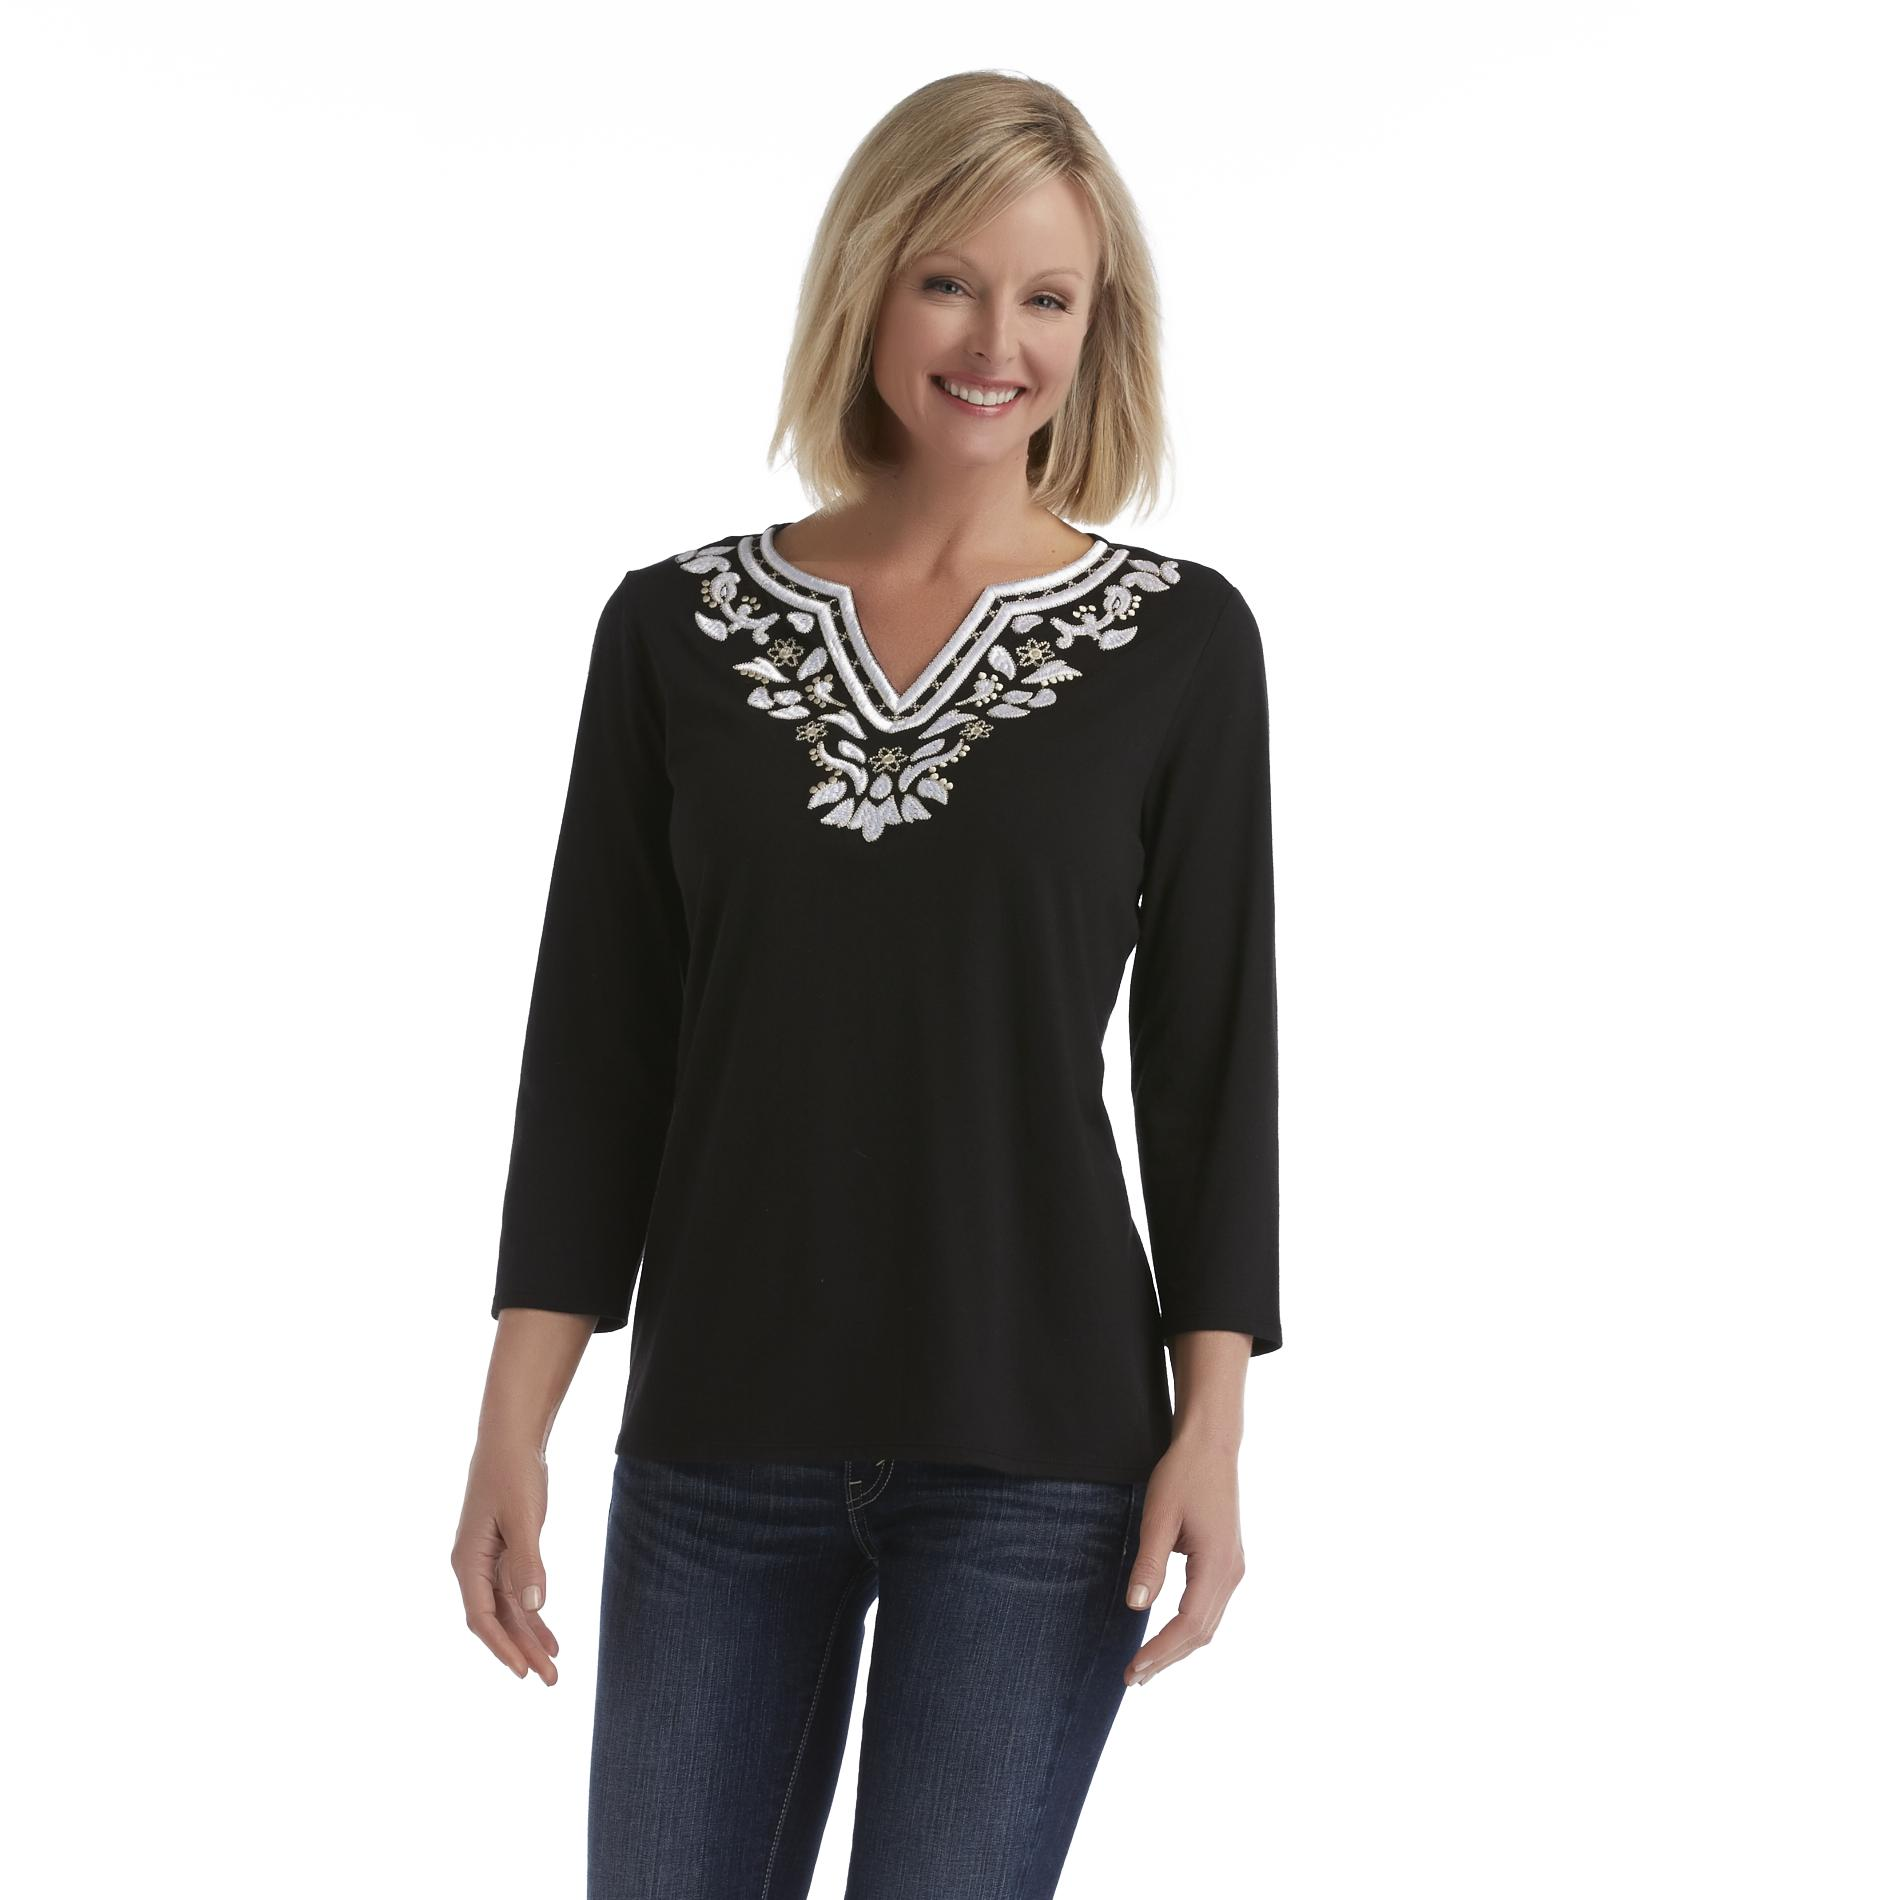 Laura Scott Women's Embroidered V-Neck Top at Sears.com